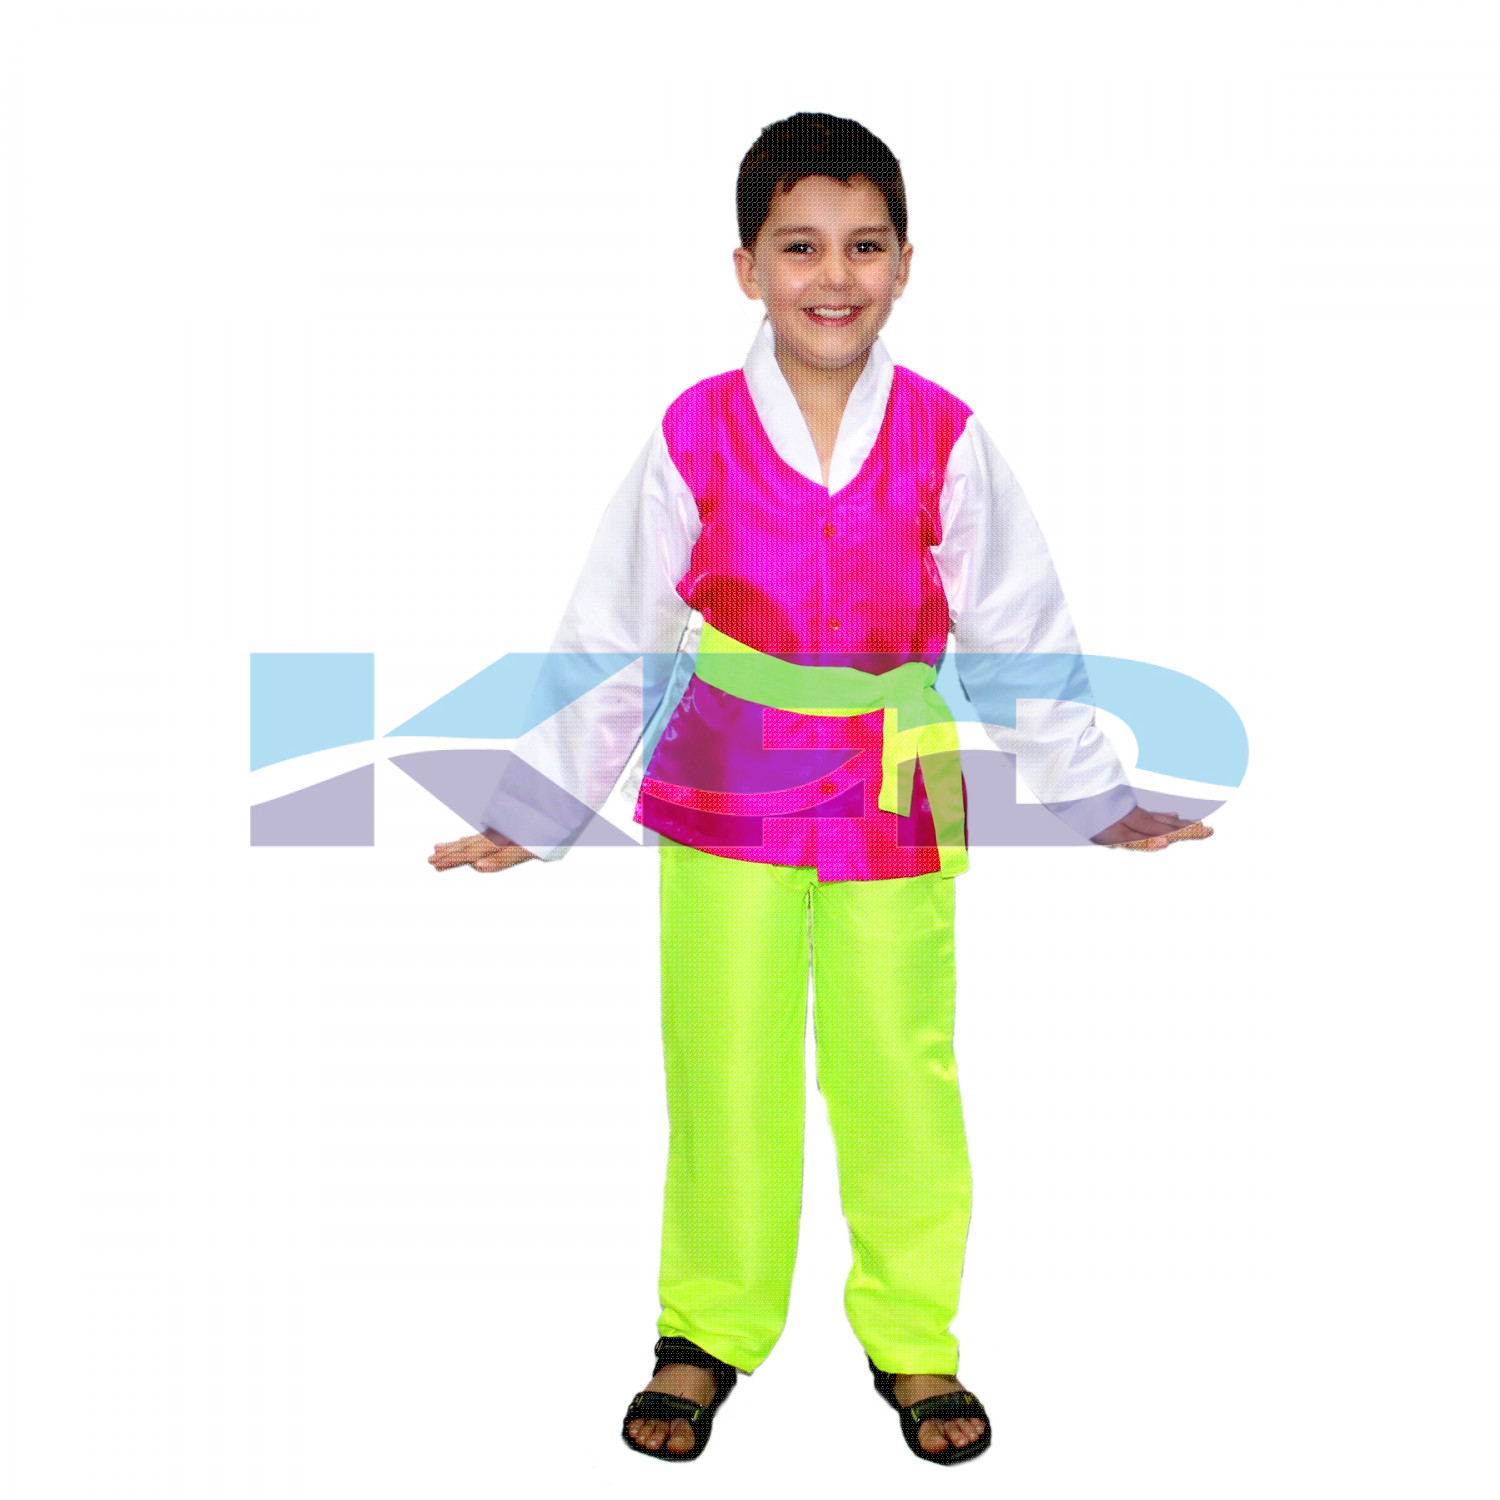 Korean Boy Costume for kids/International traditional costume for kids/Halloween costume/Theme Party/Competition/Stage Shows/Birthday Party Dress